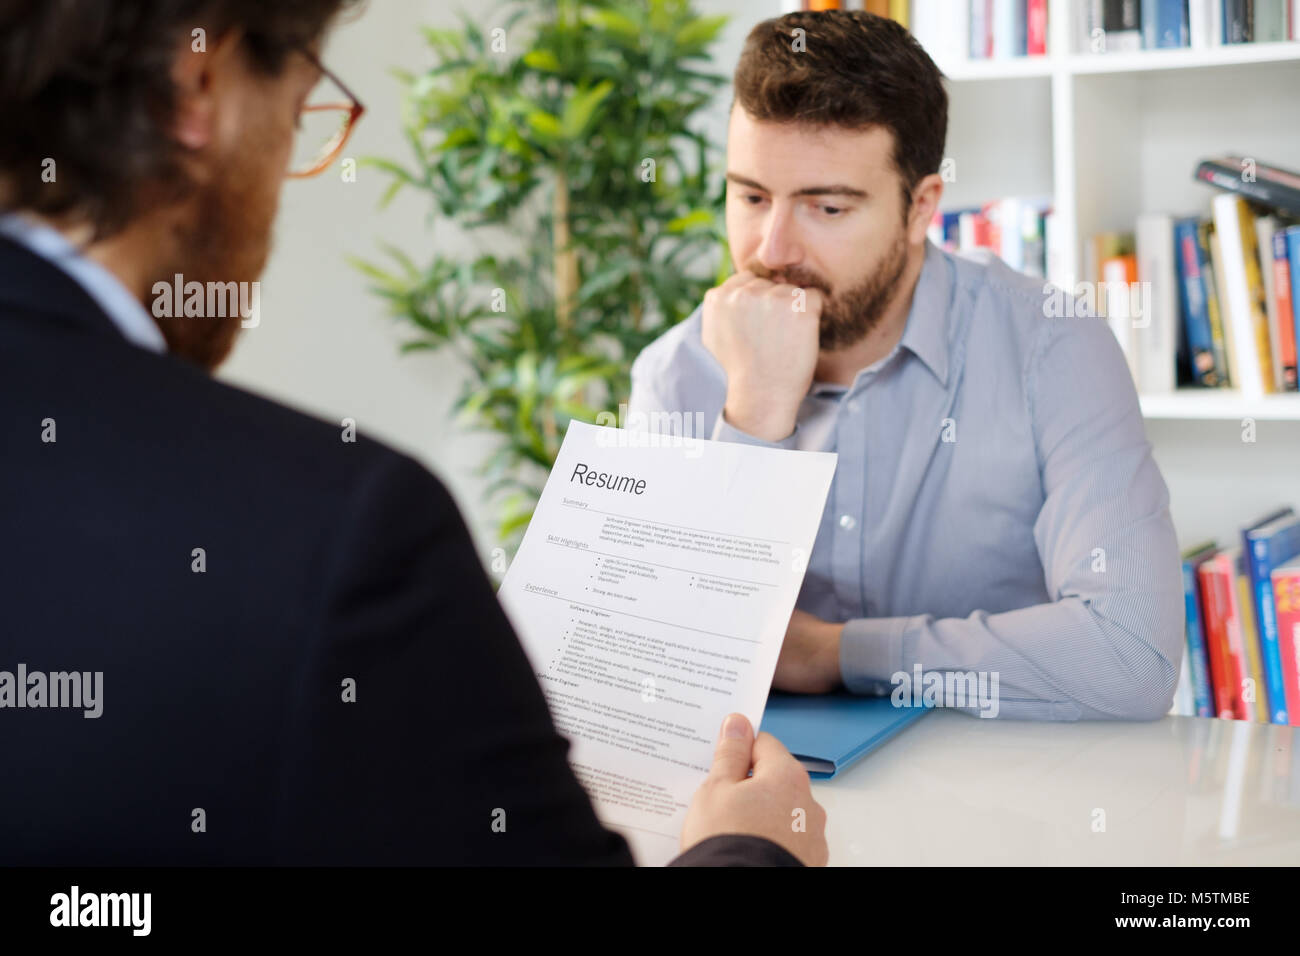 Nervous man during a job interview - Stock Image